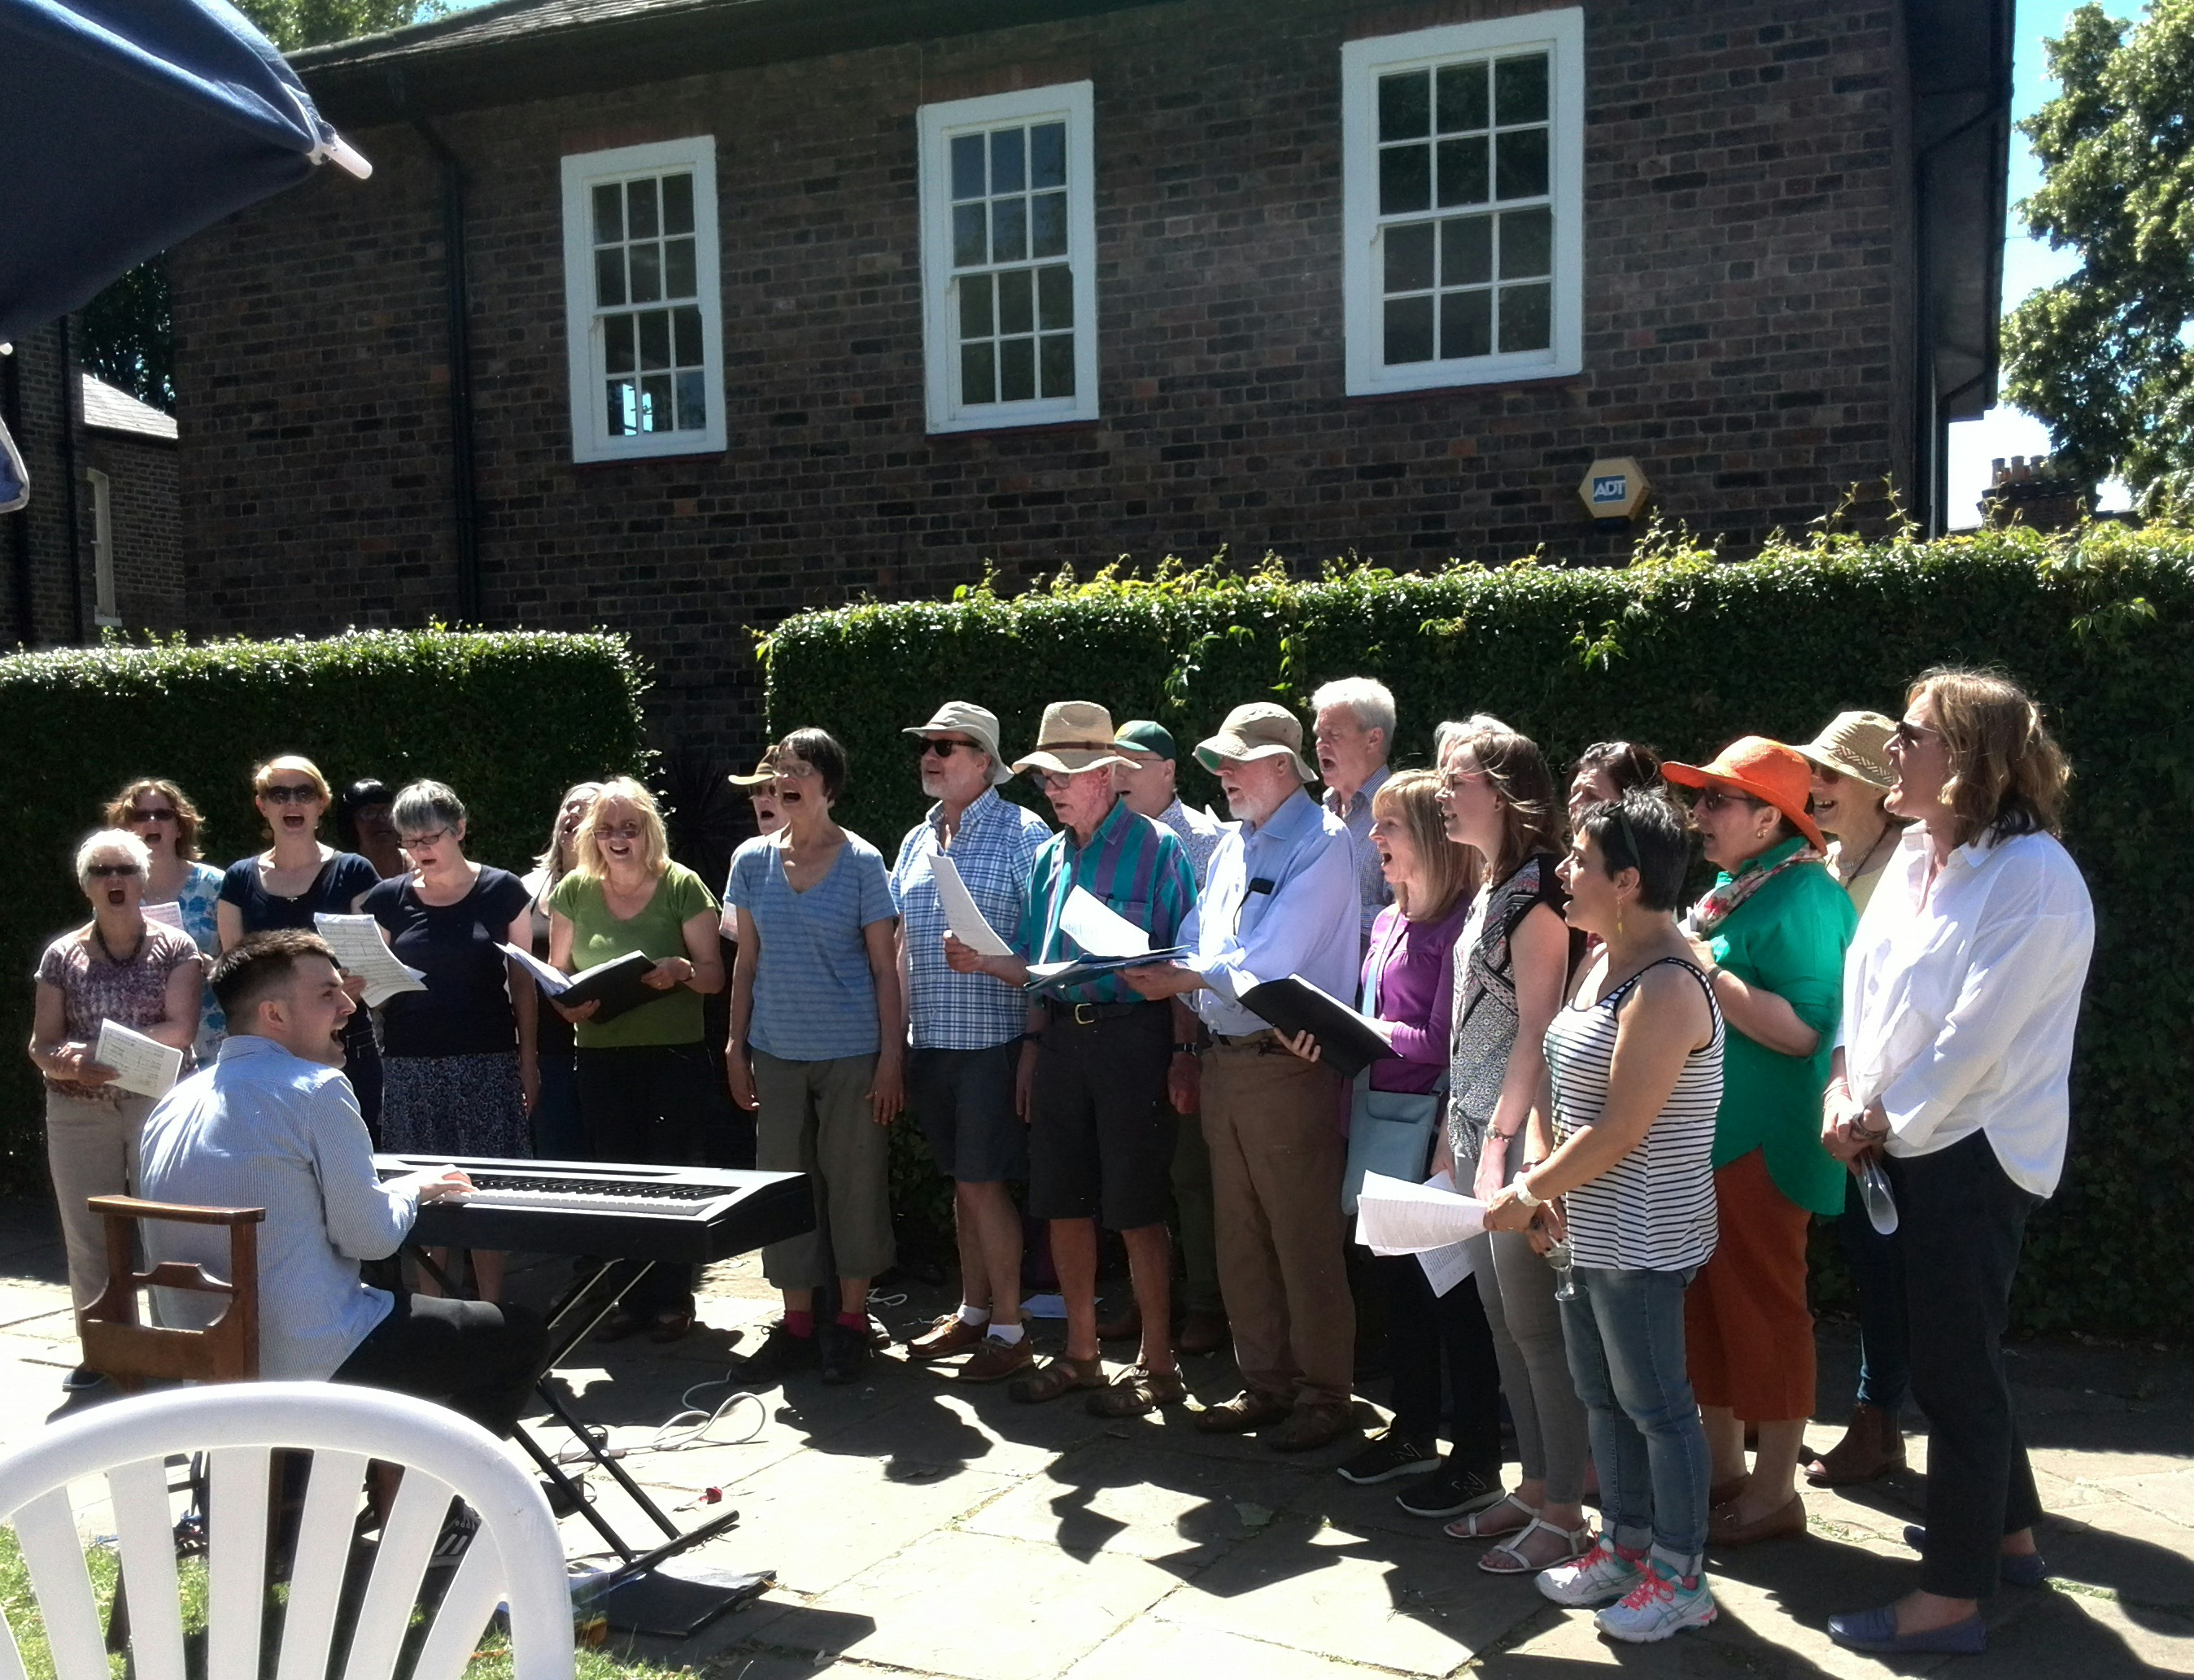 Clapham Community Choir